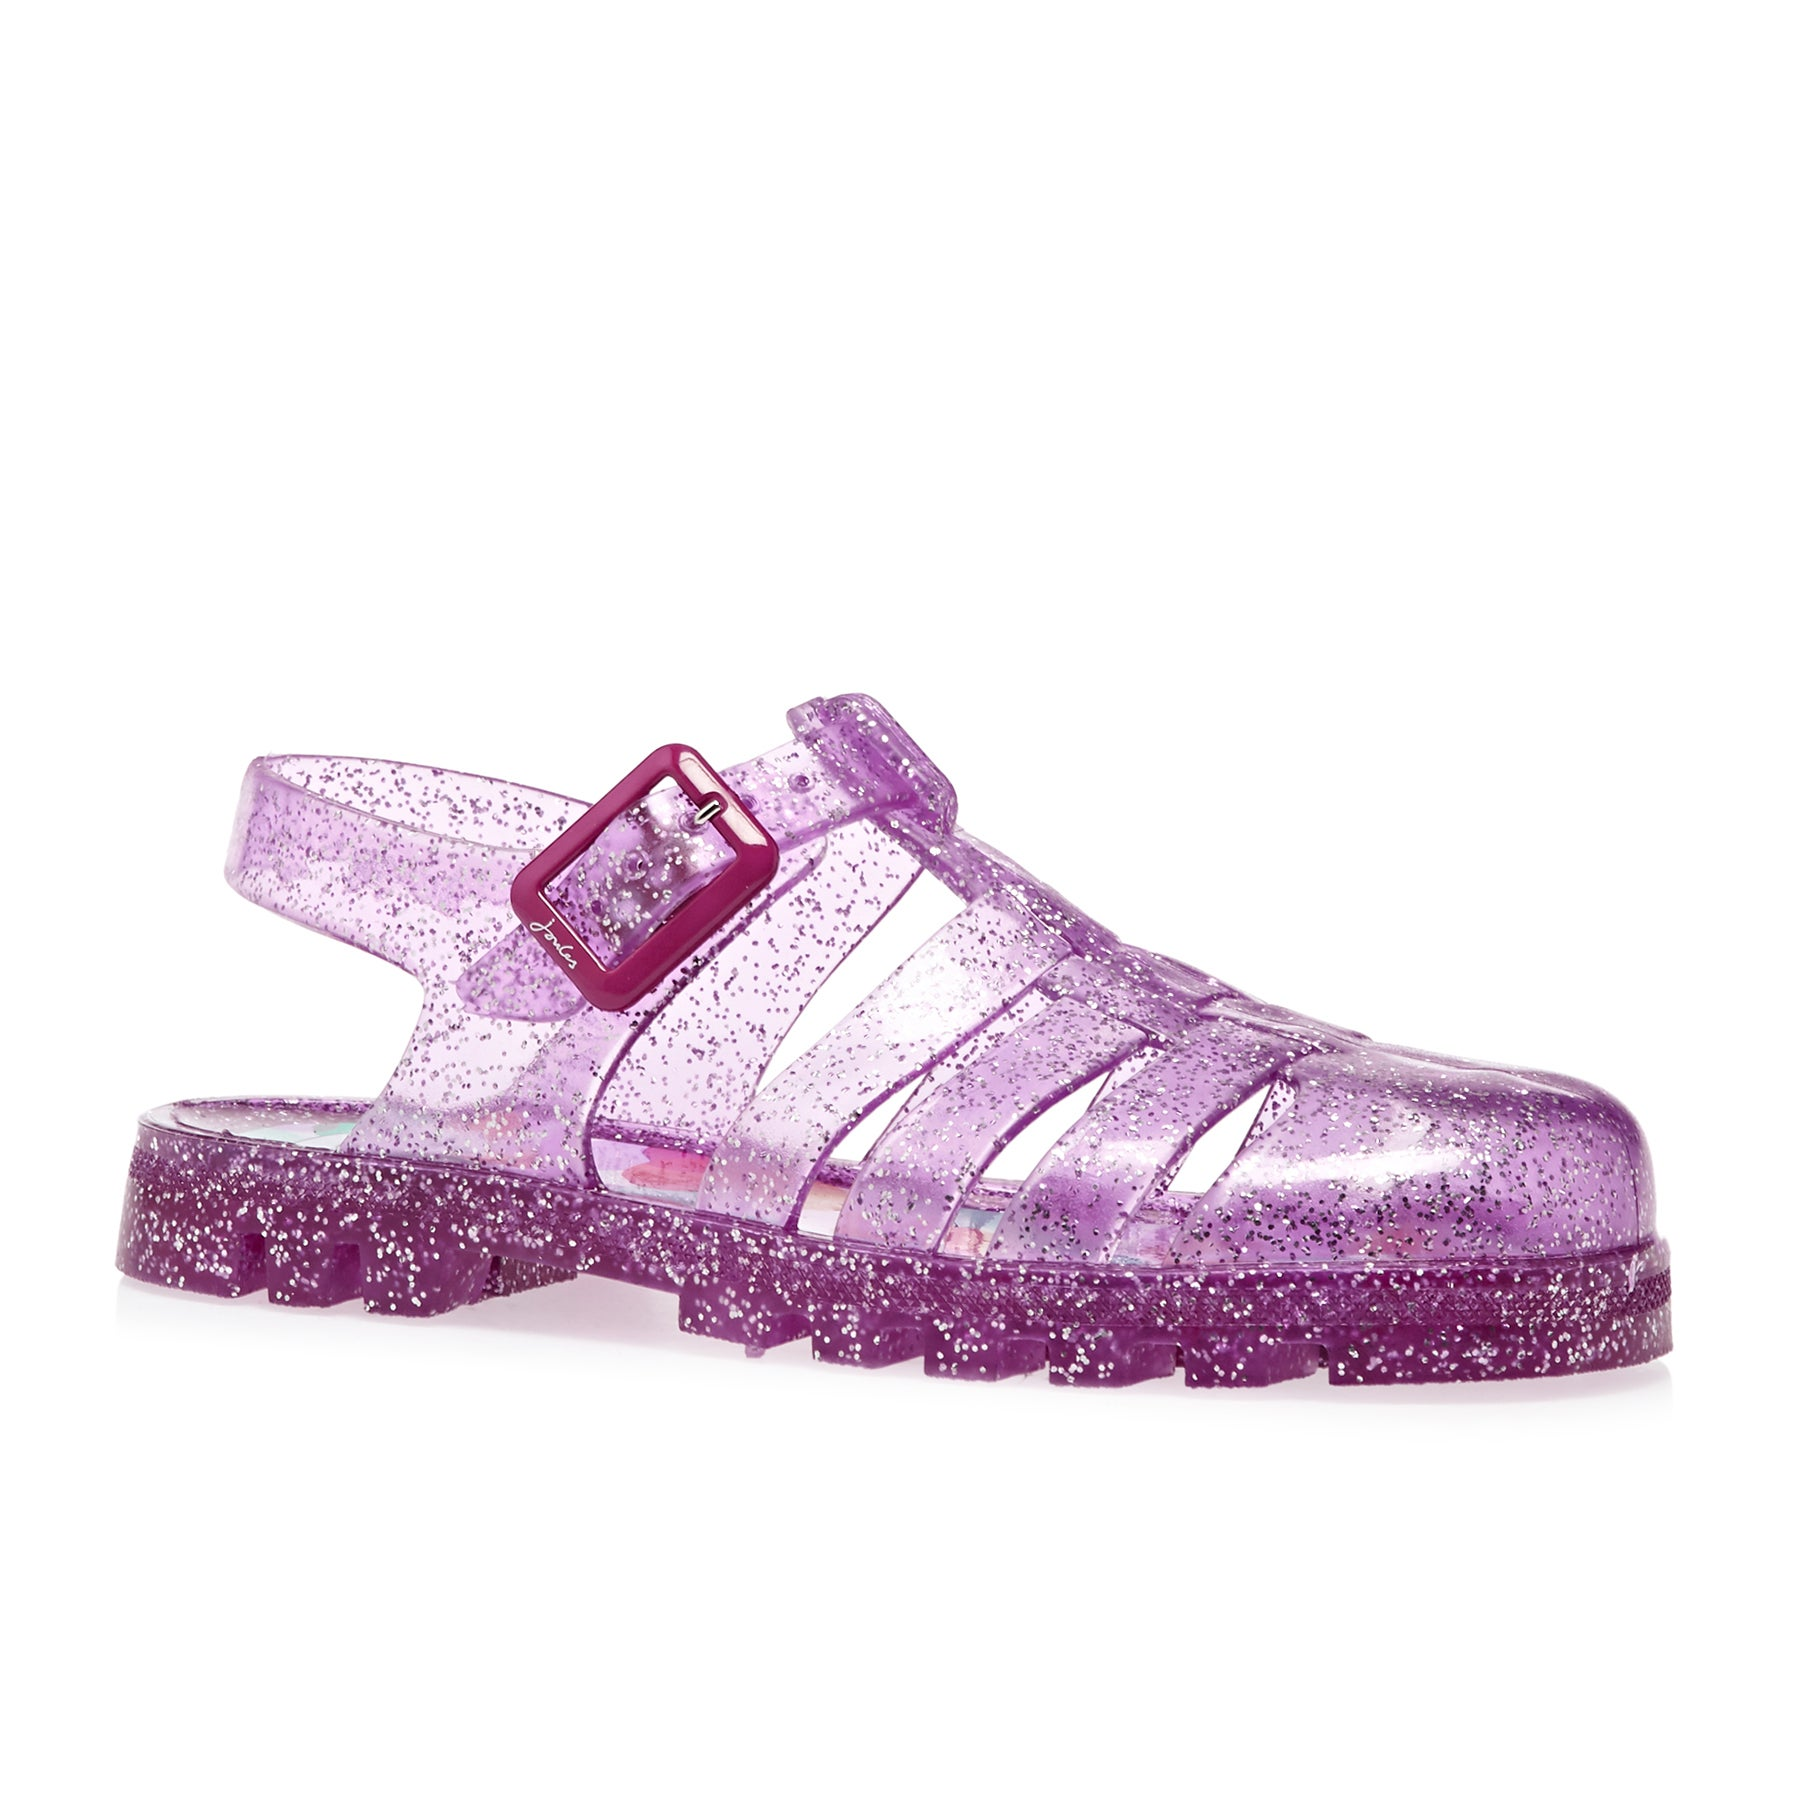 Joules Jelly Shoe Kids Sandals - Truly Pink